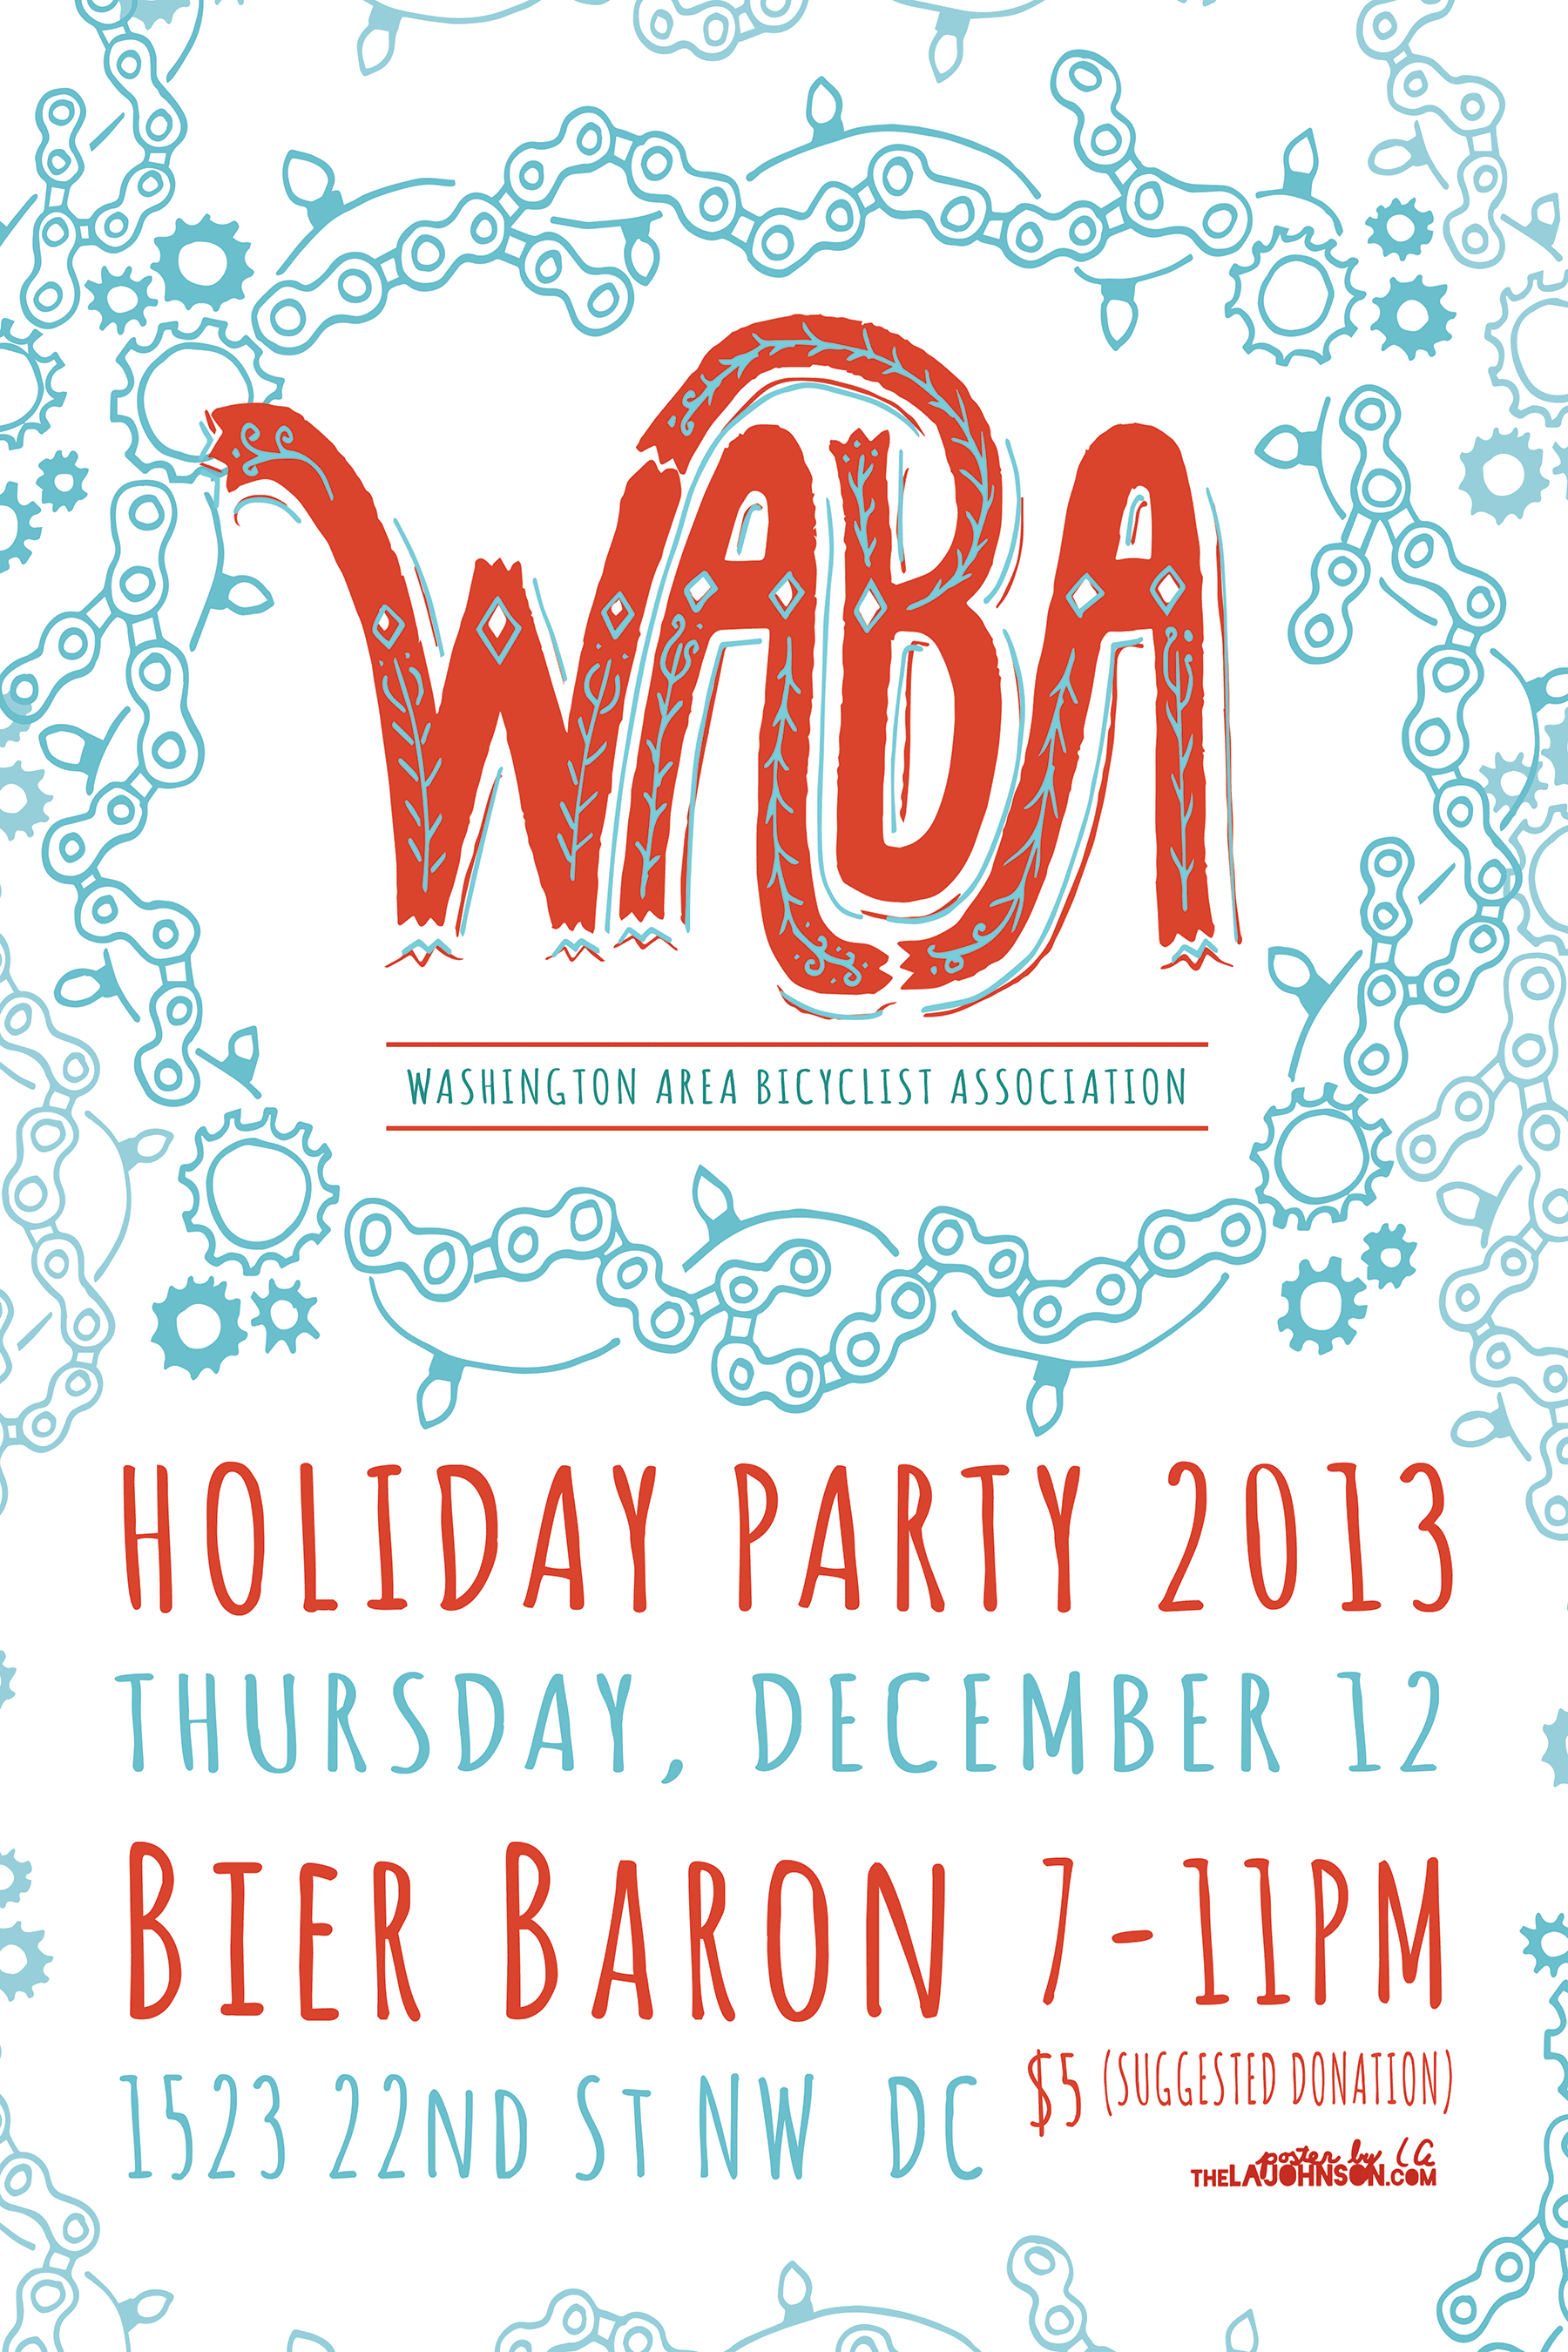 holiday party washington area bicyclist association are you ready for bikes beer and holiday cheer come celebrate the holidays and a year of great bike advocacy work at our annual party